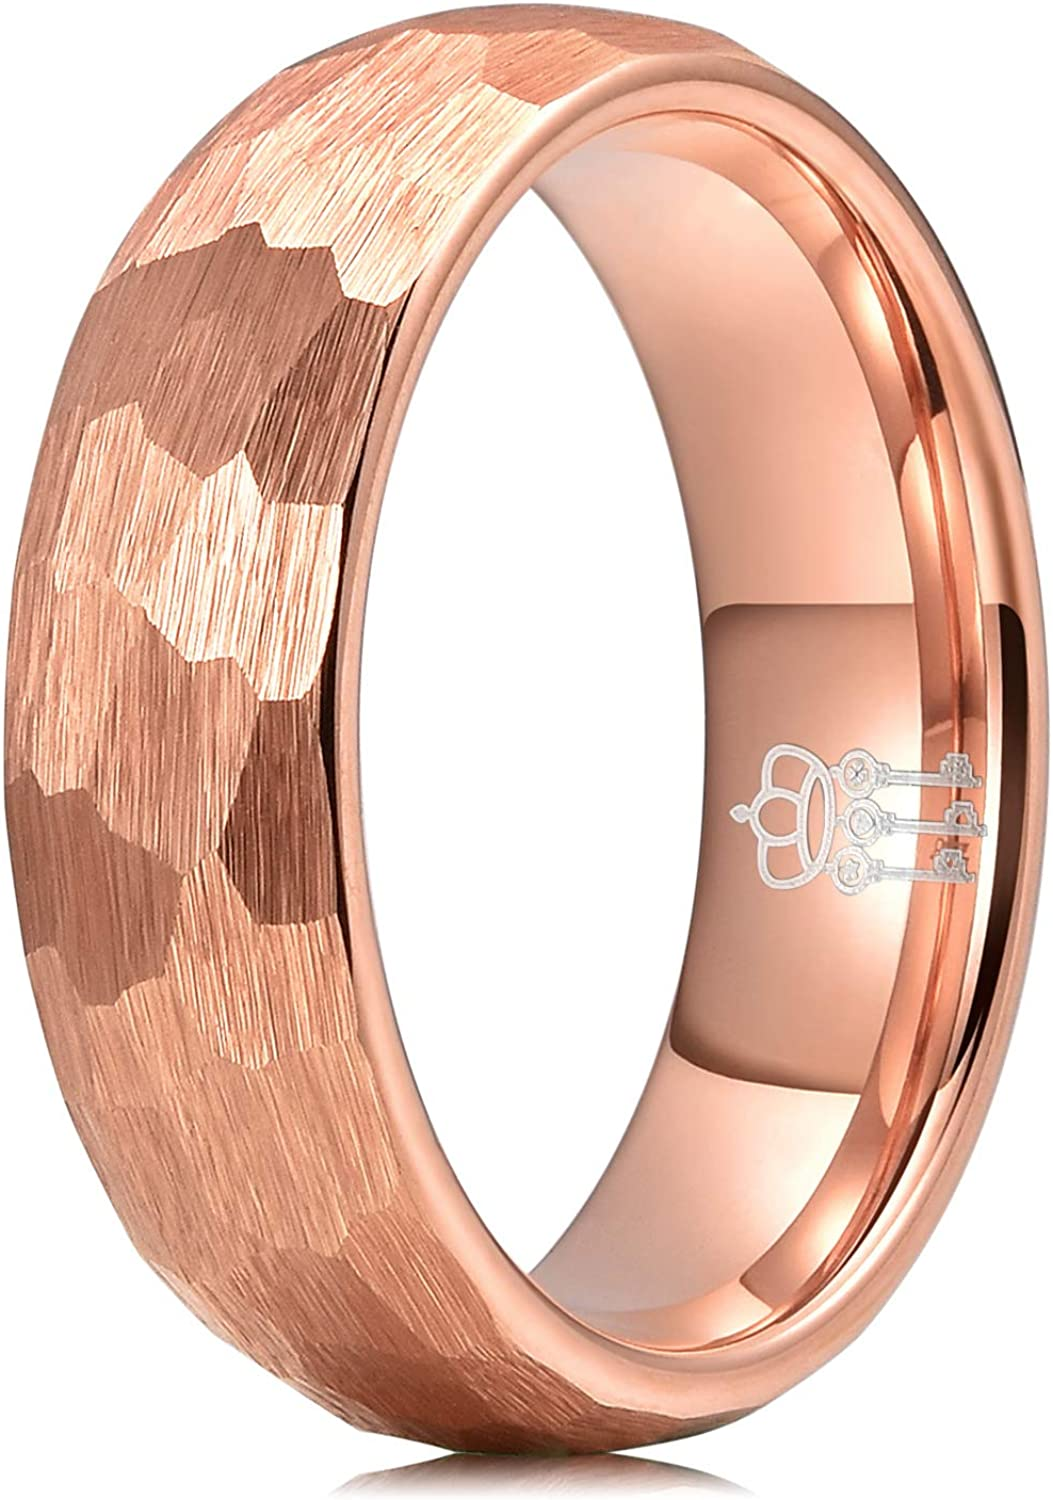 THREE KEYS JEWELRY Hammered Tungsten Wedding Rings 2mm 4mm 6mm 8mm Brushed Rose Gold Engagement Band